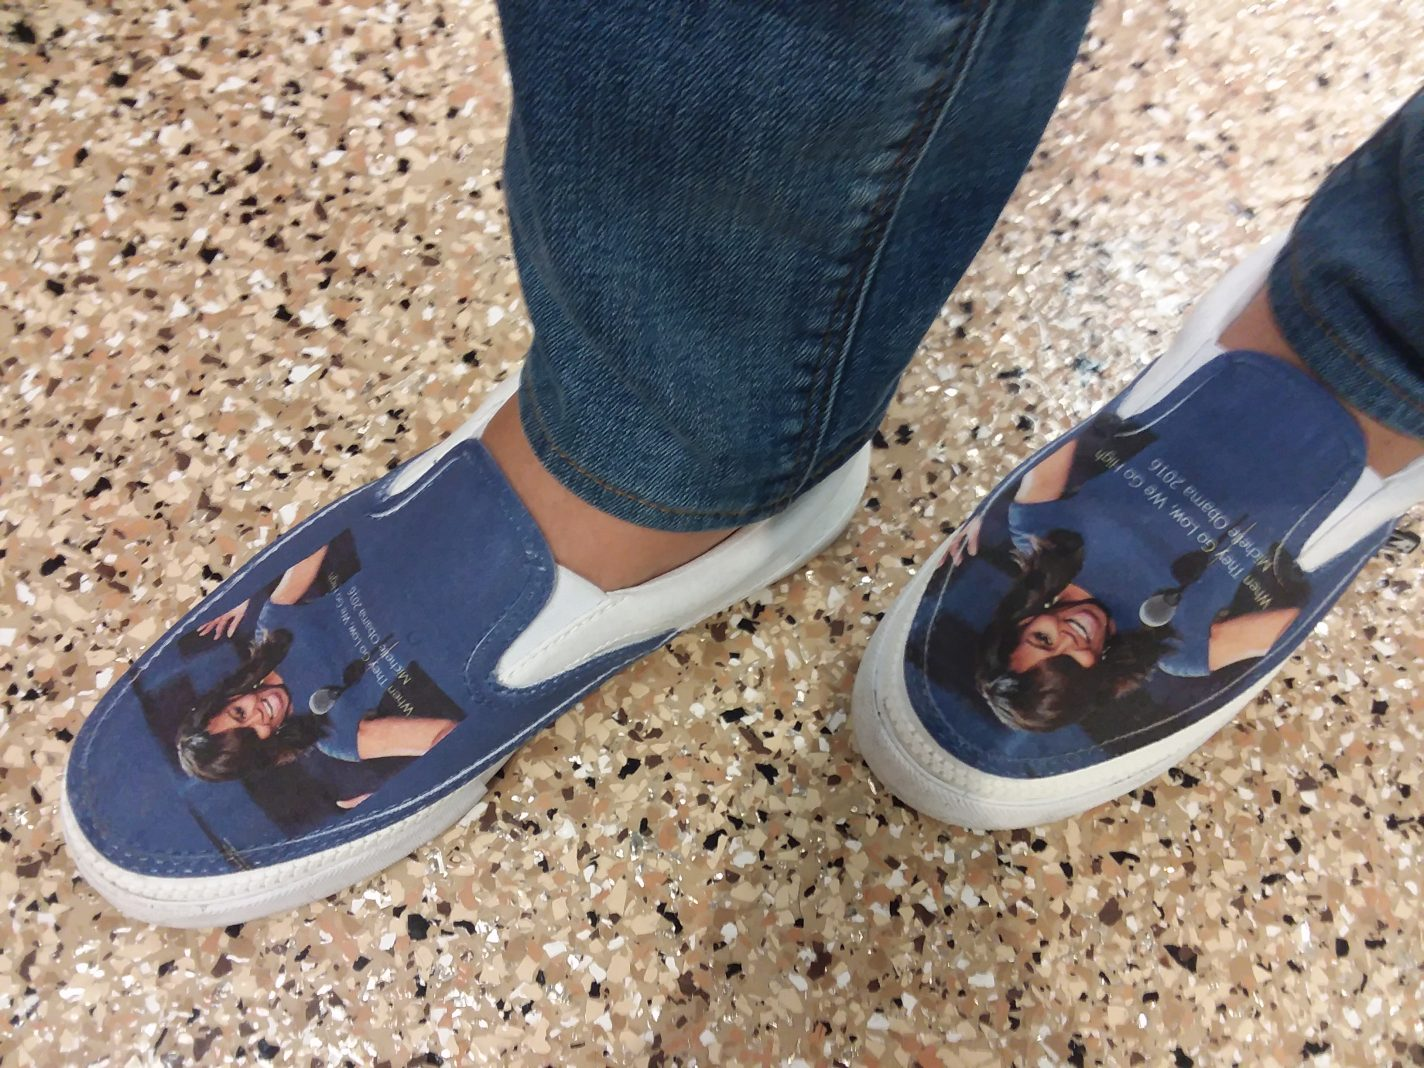 The Michelle Obama shoes